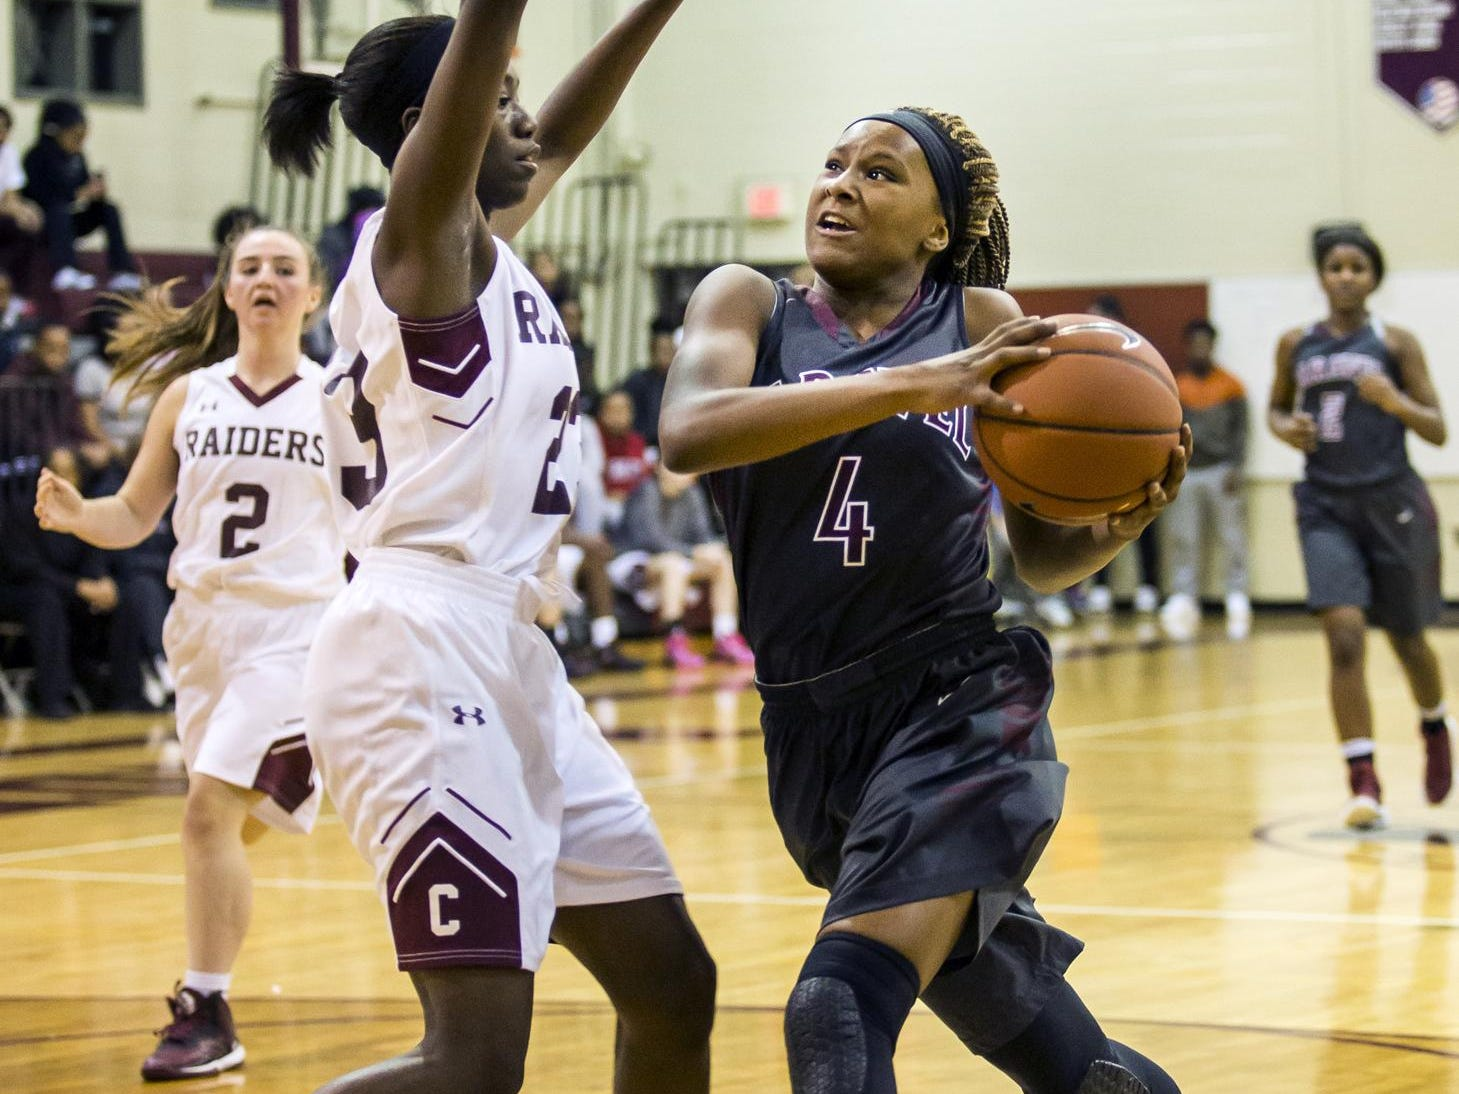 Caravel's Sasha Marvel (No. 4) drives to the basket as Concord's Zhan'e Snow defends in the second half of Caravel's 42-26 win over Concord at Concord High School on Monday night.